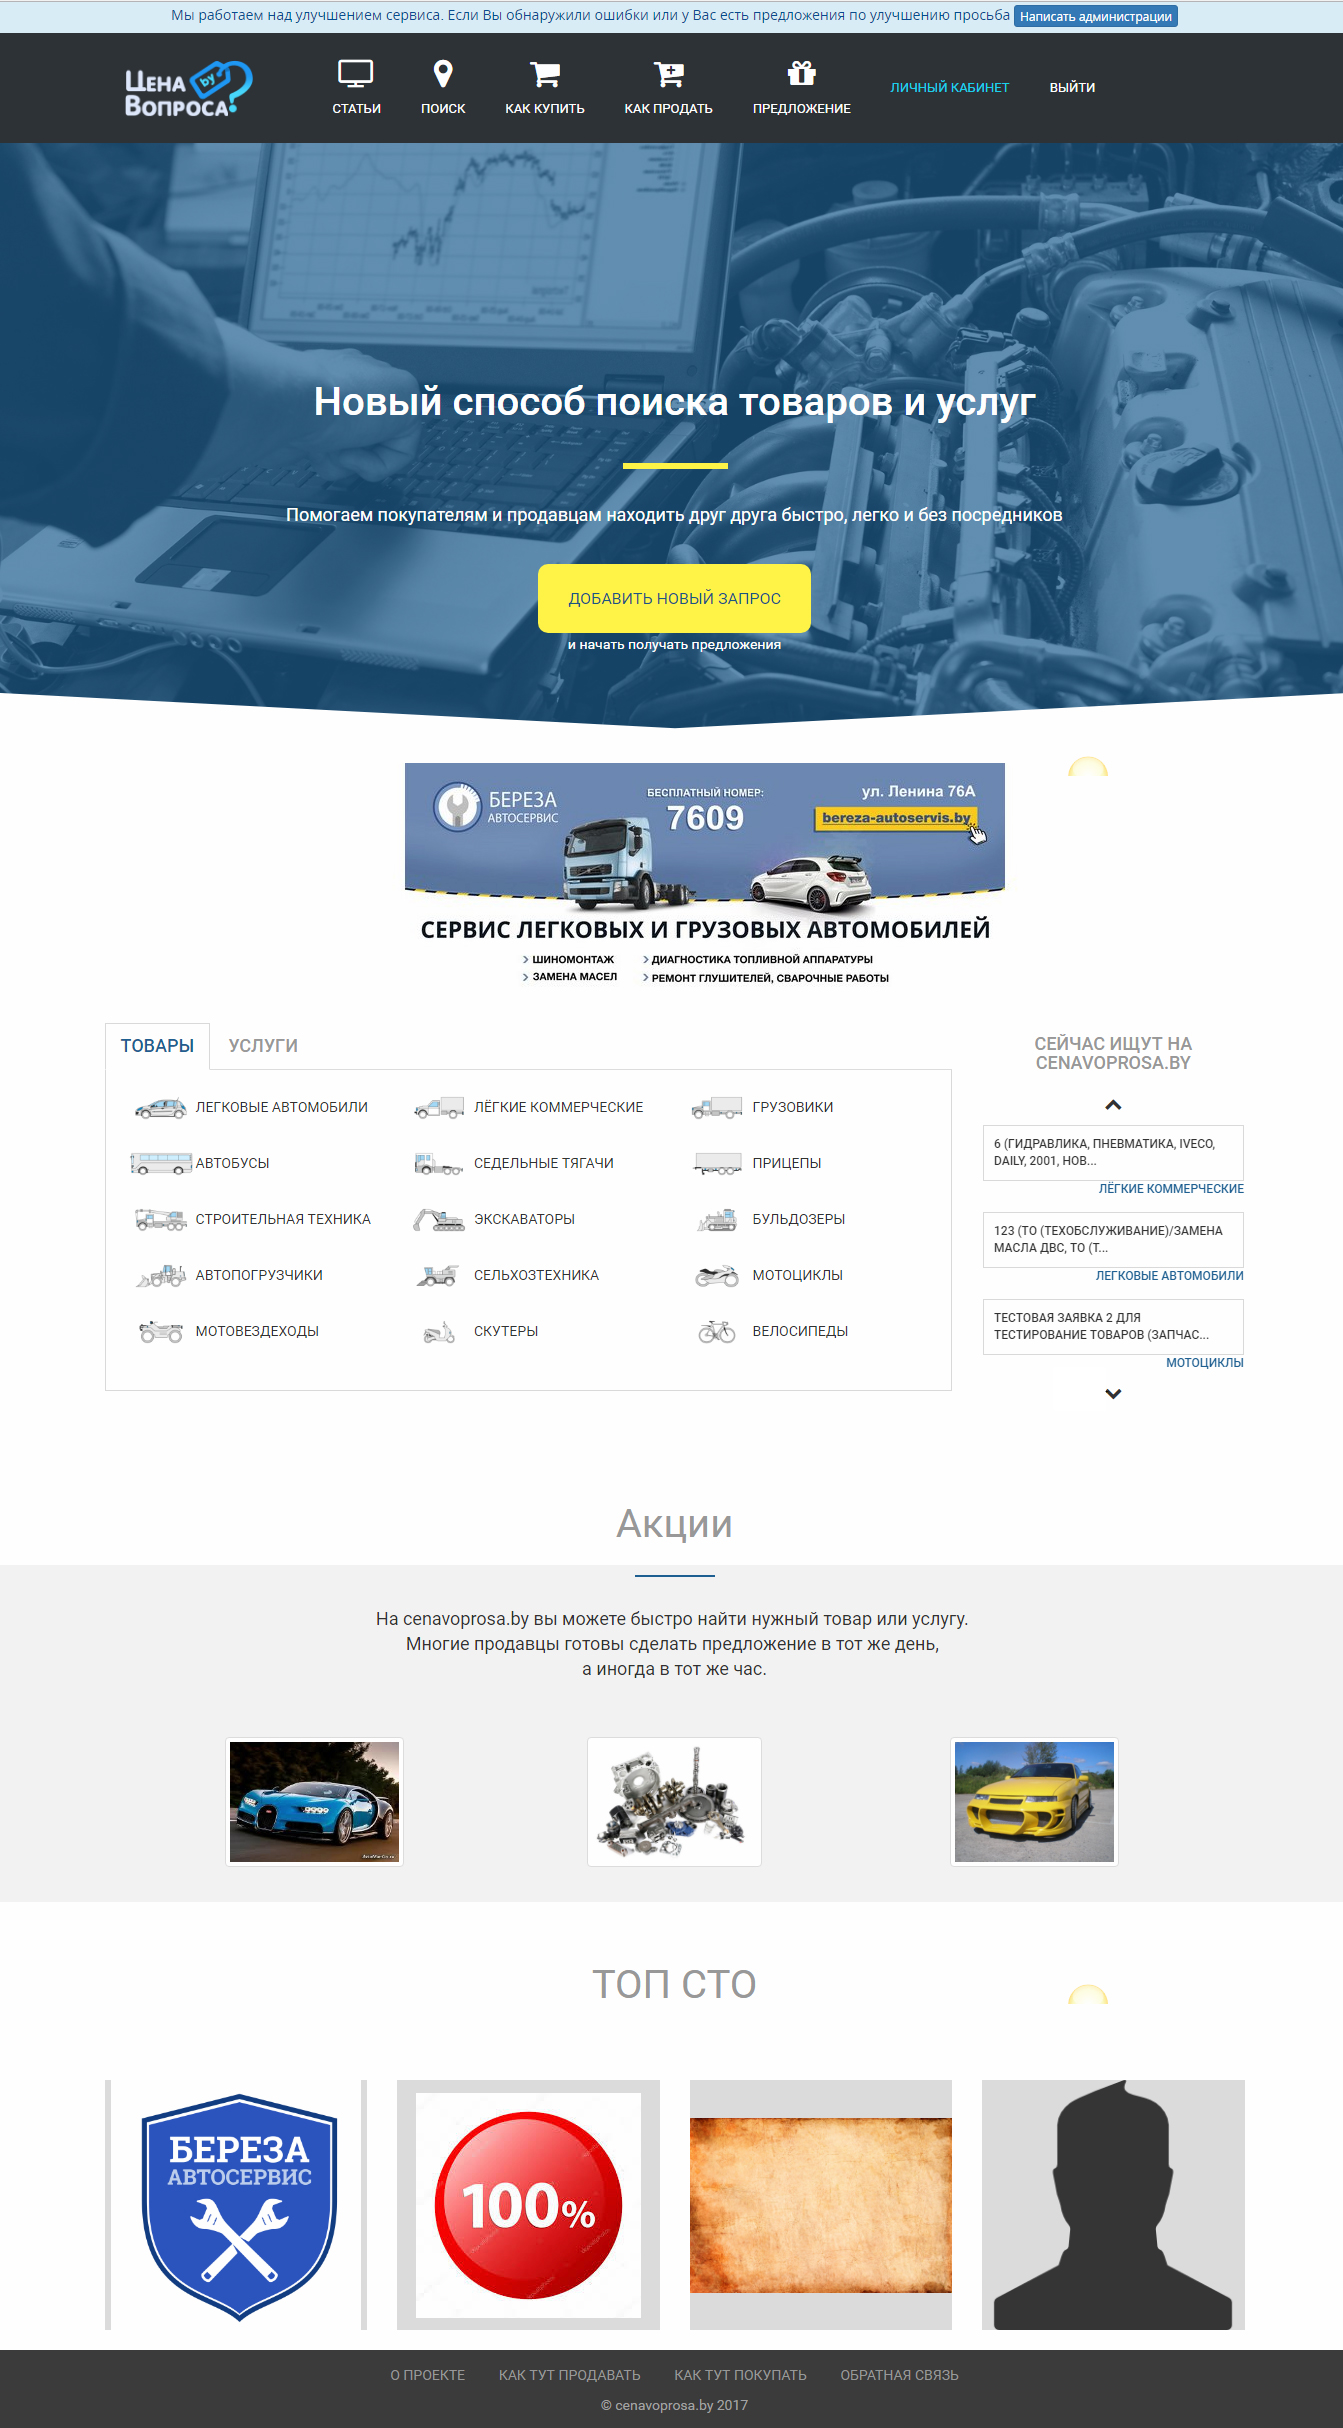 Development of a website for car-service center selection and search for spare parts